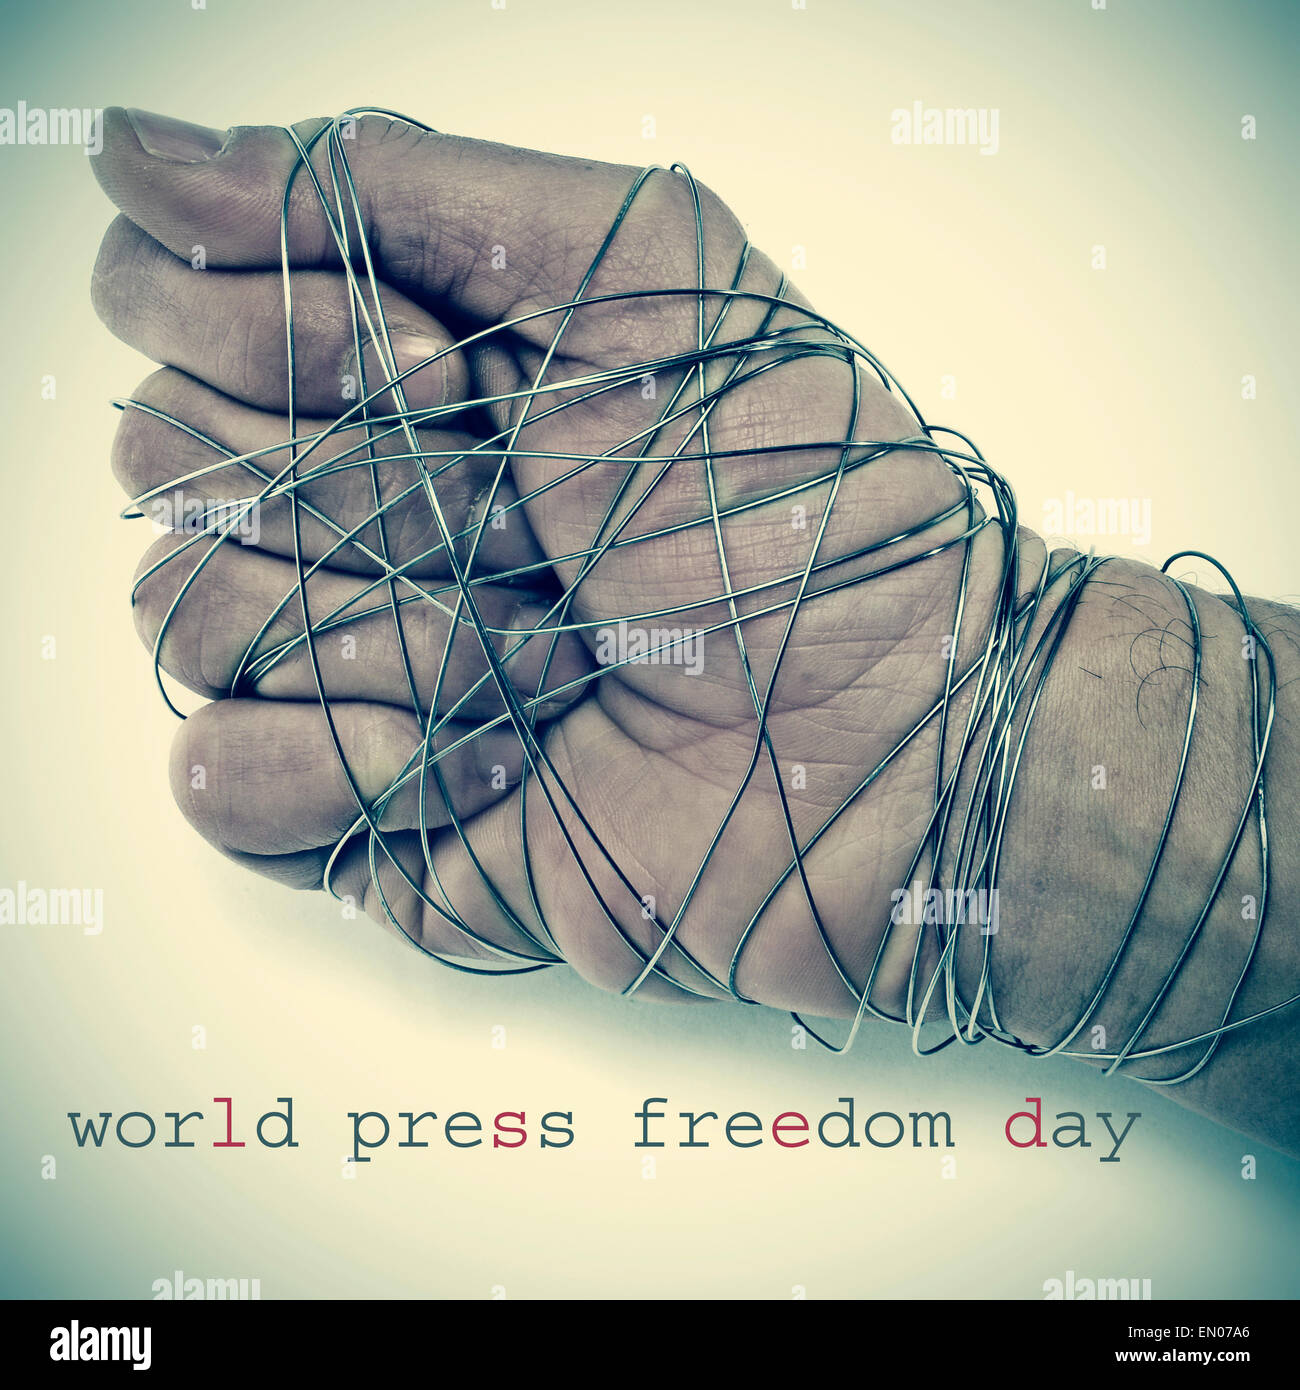 the text world press freedom day and the hand of a man completely tied with wire, depicting the idea of oppression - Stock Image